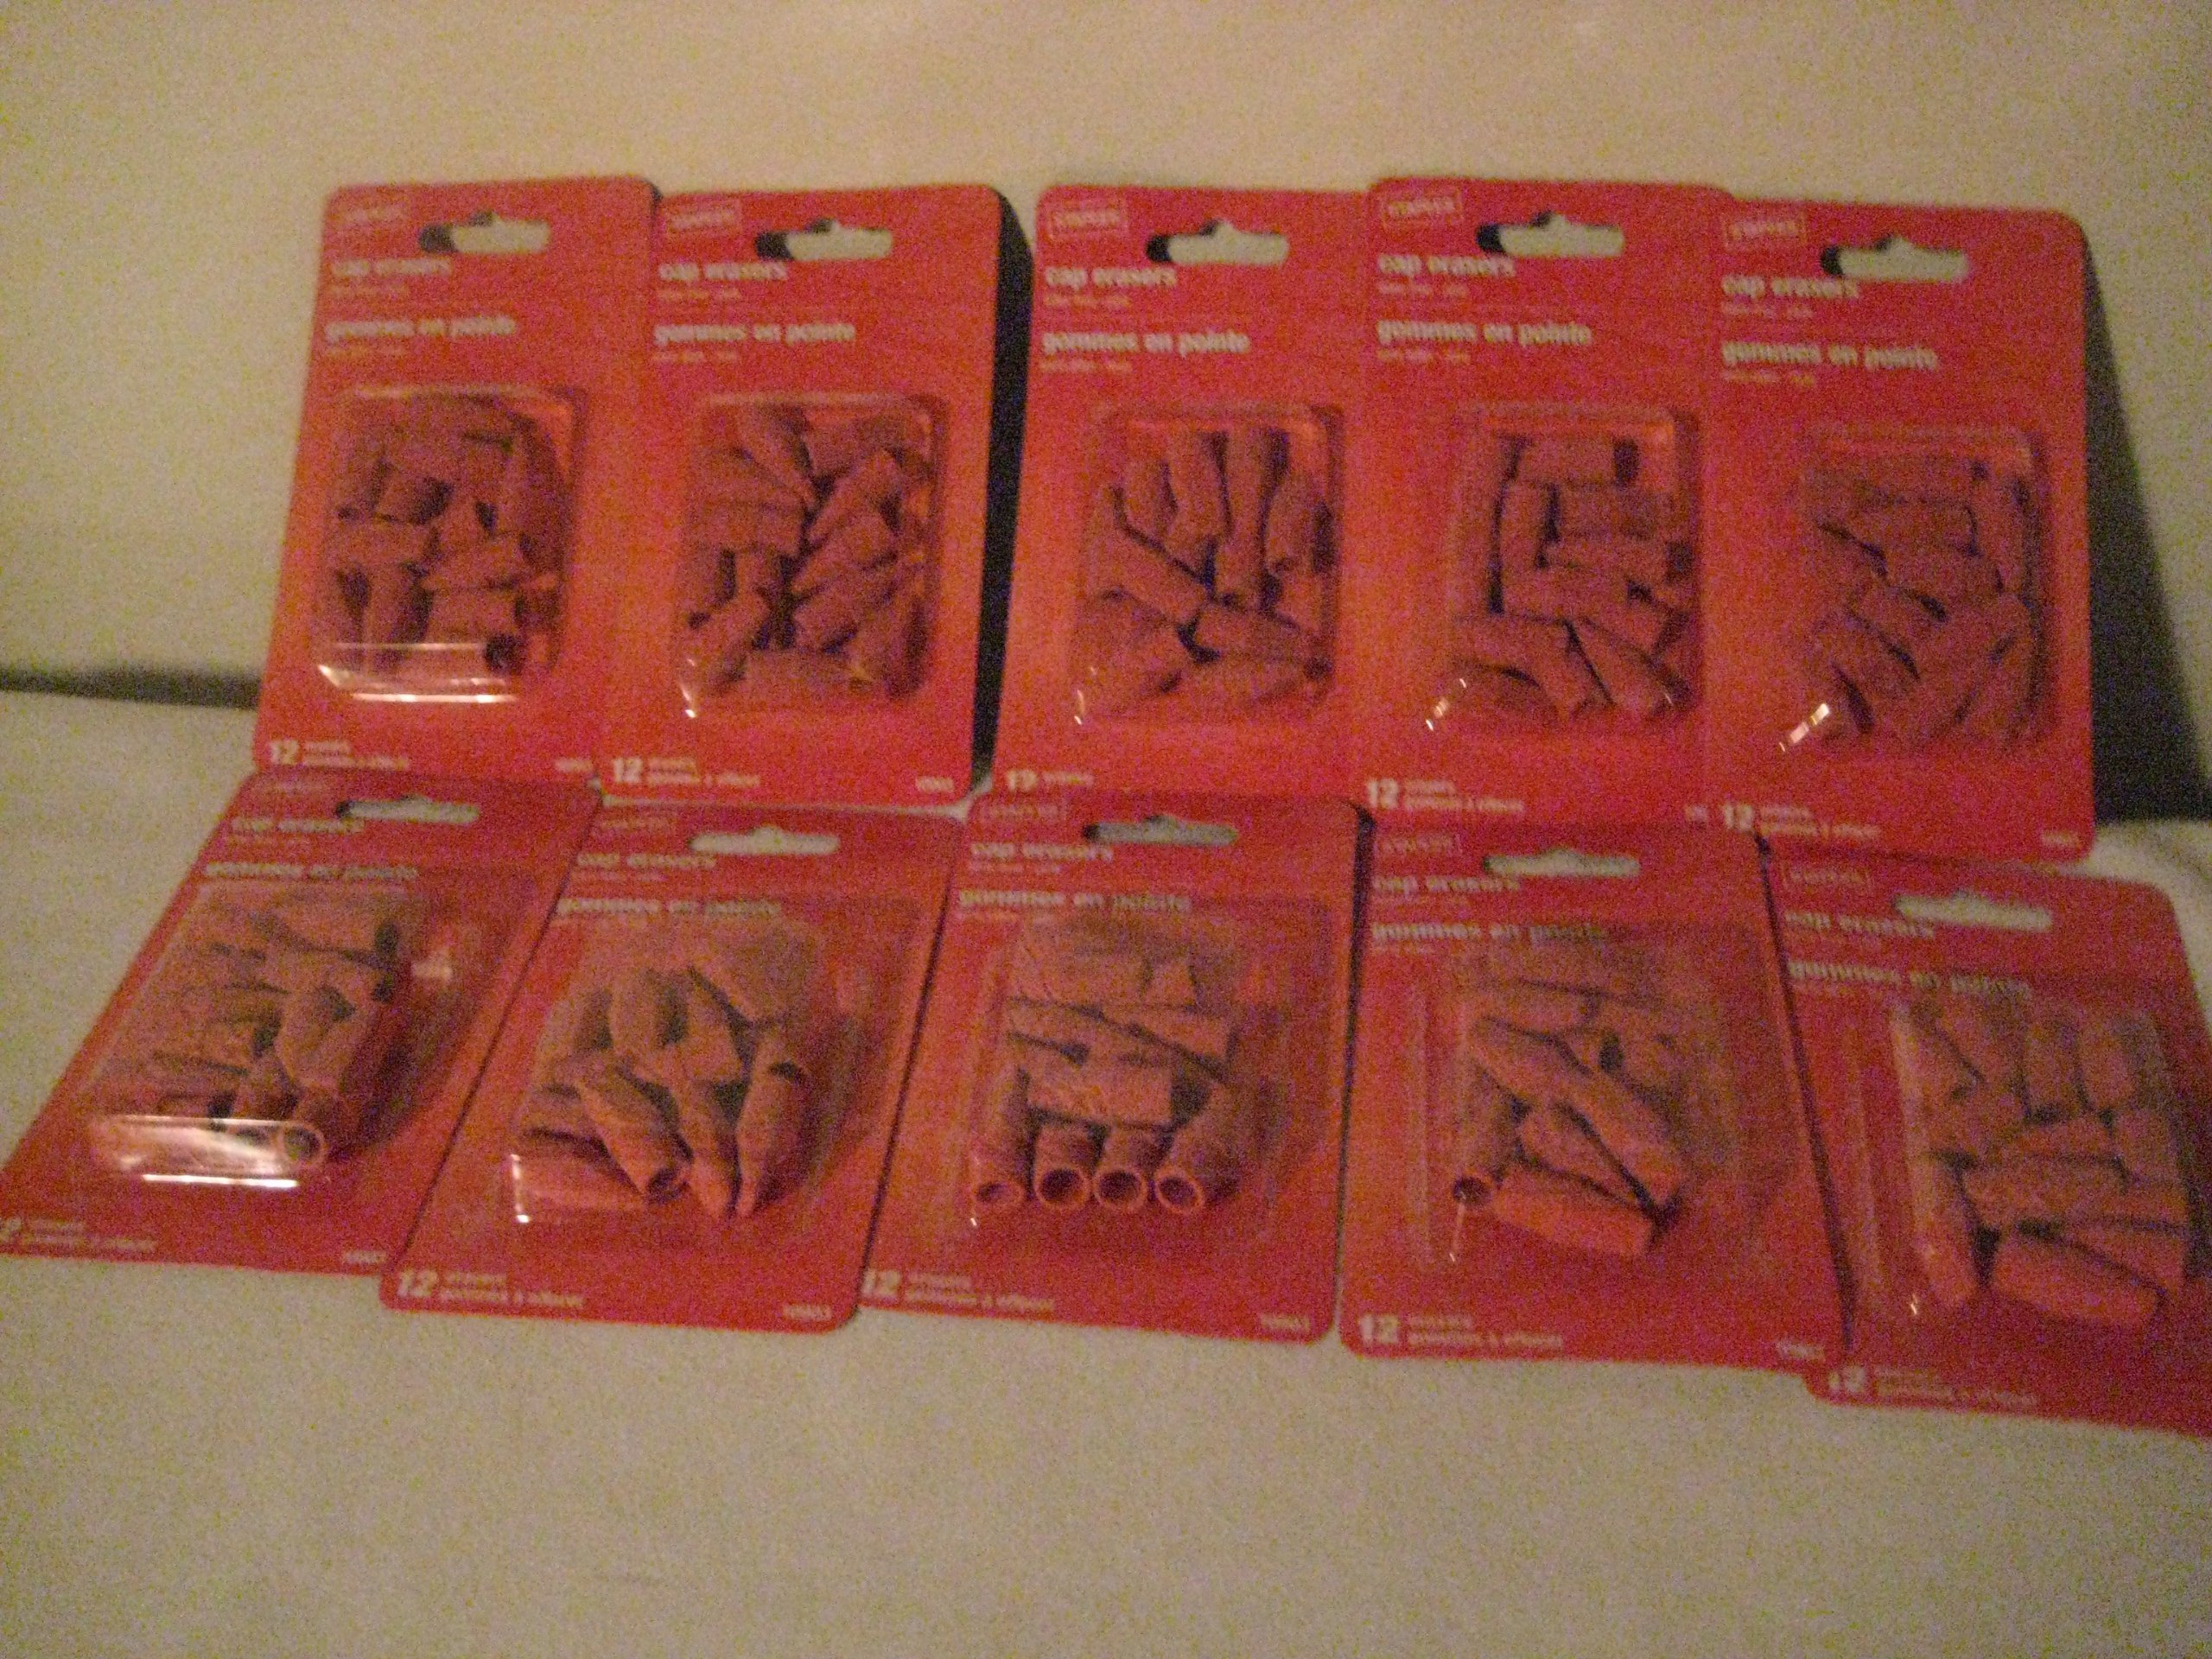 Staple Arrowhead Pink Cap Erasers (10 Pack) by By: Staples (Image #1)